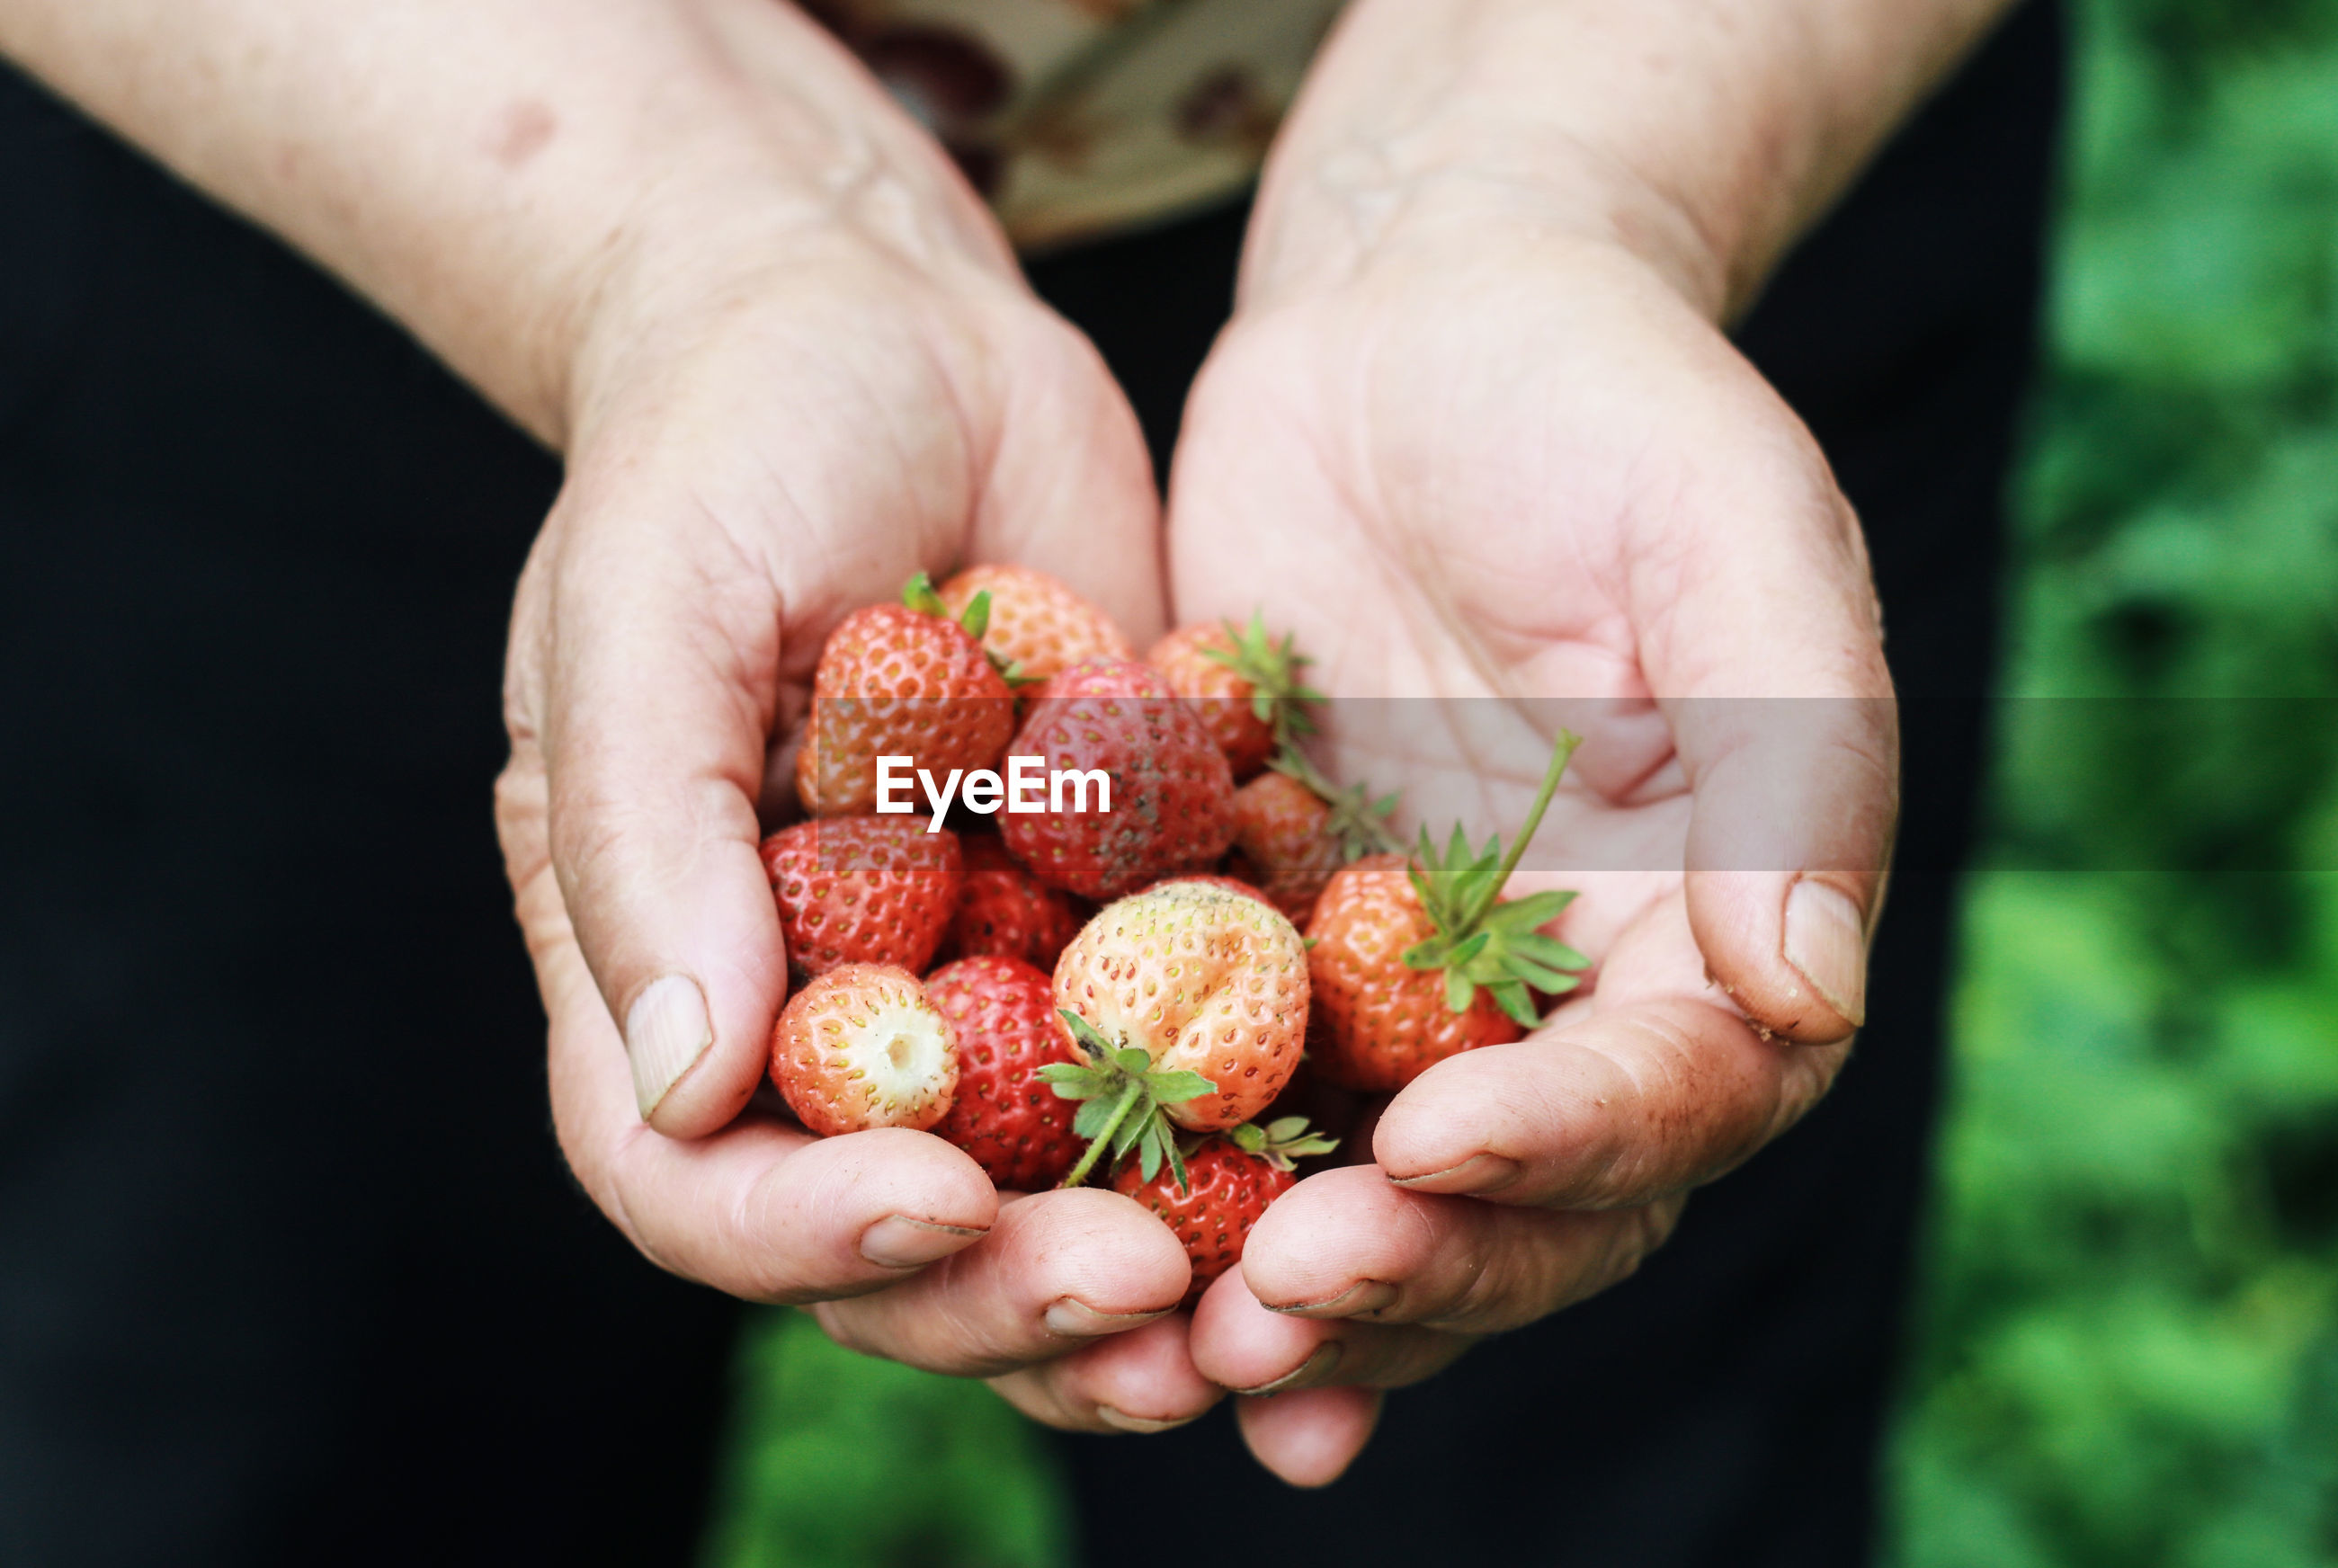 Midsection of man holding strawberries